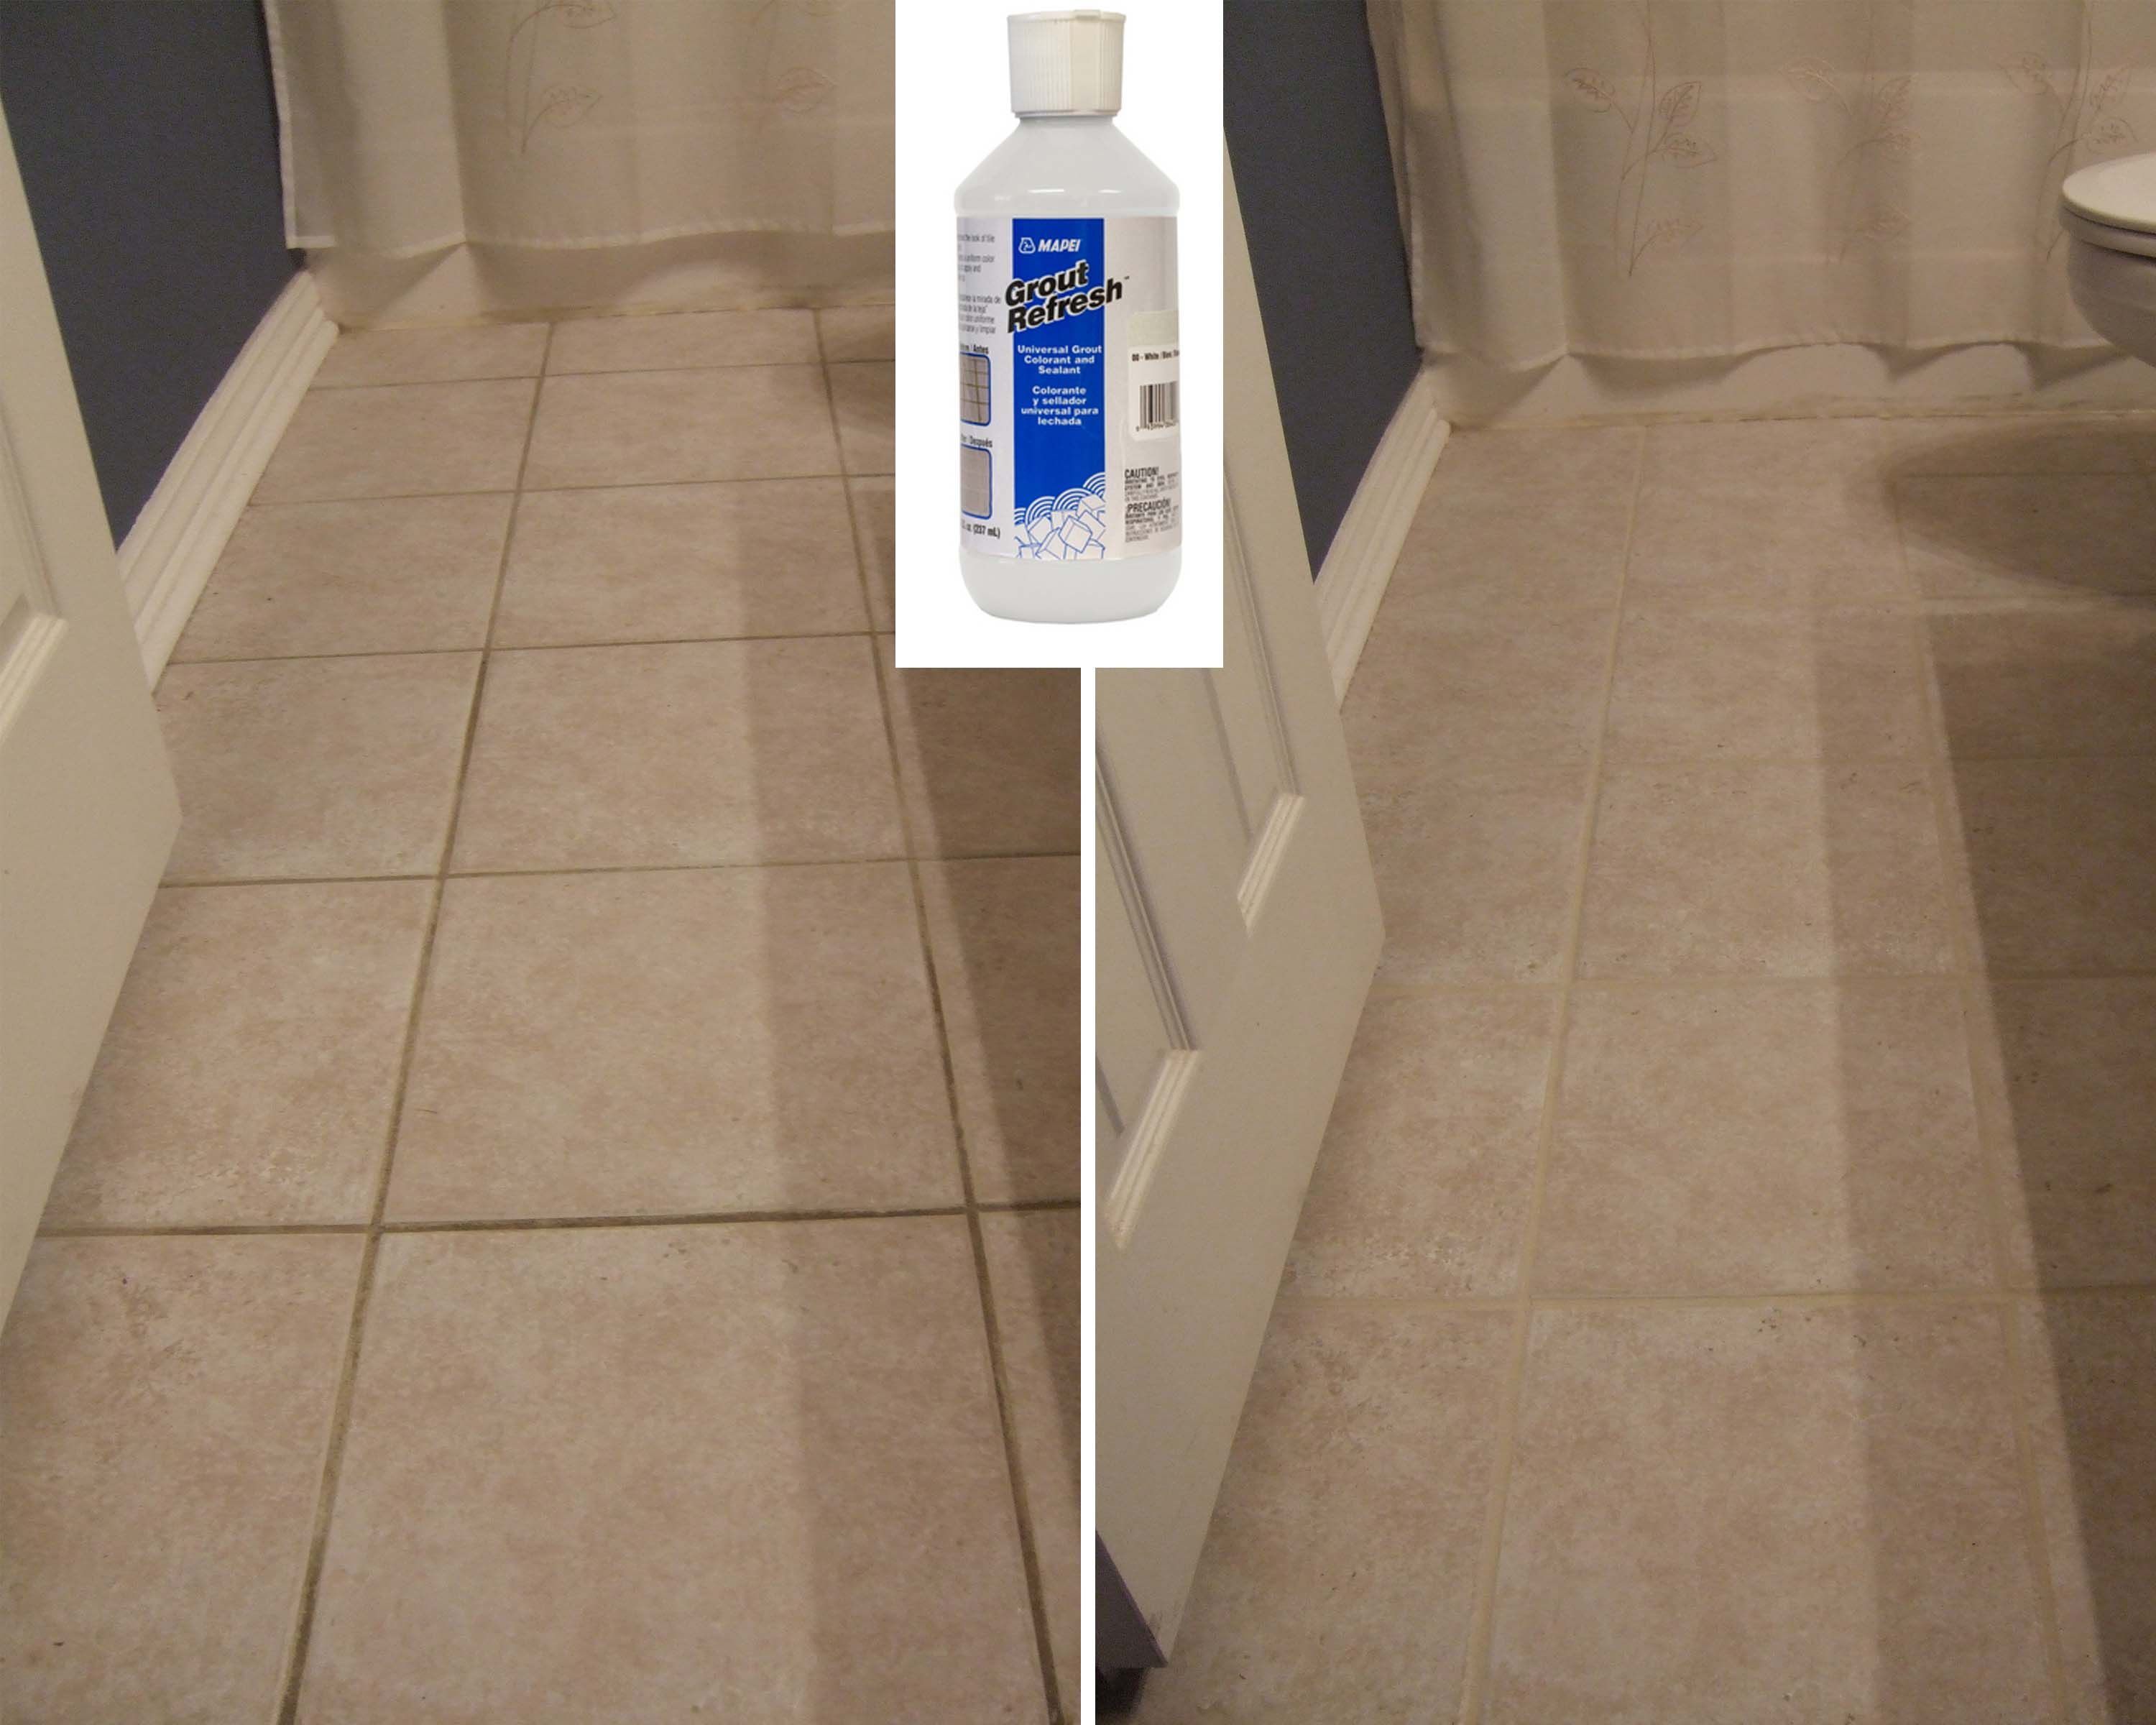 How to clean grout with peroxide baking soda grout clean grout household dailygadgetfo Images